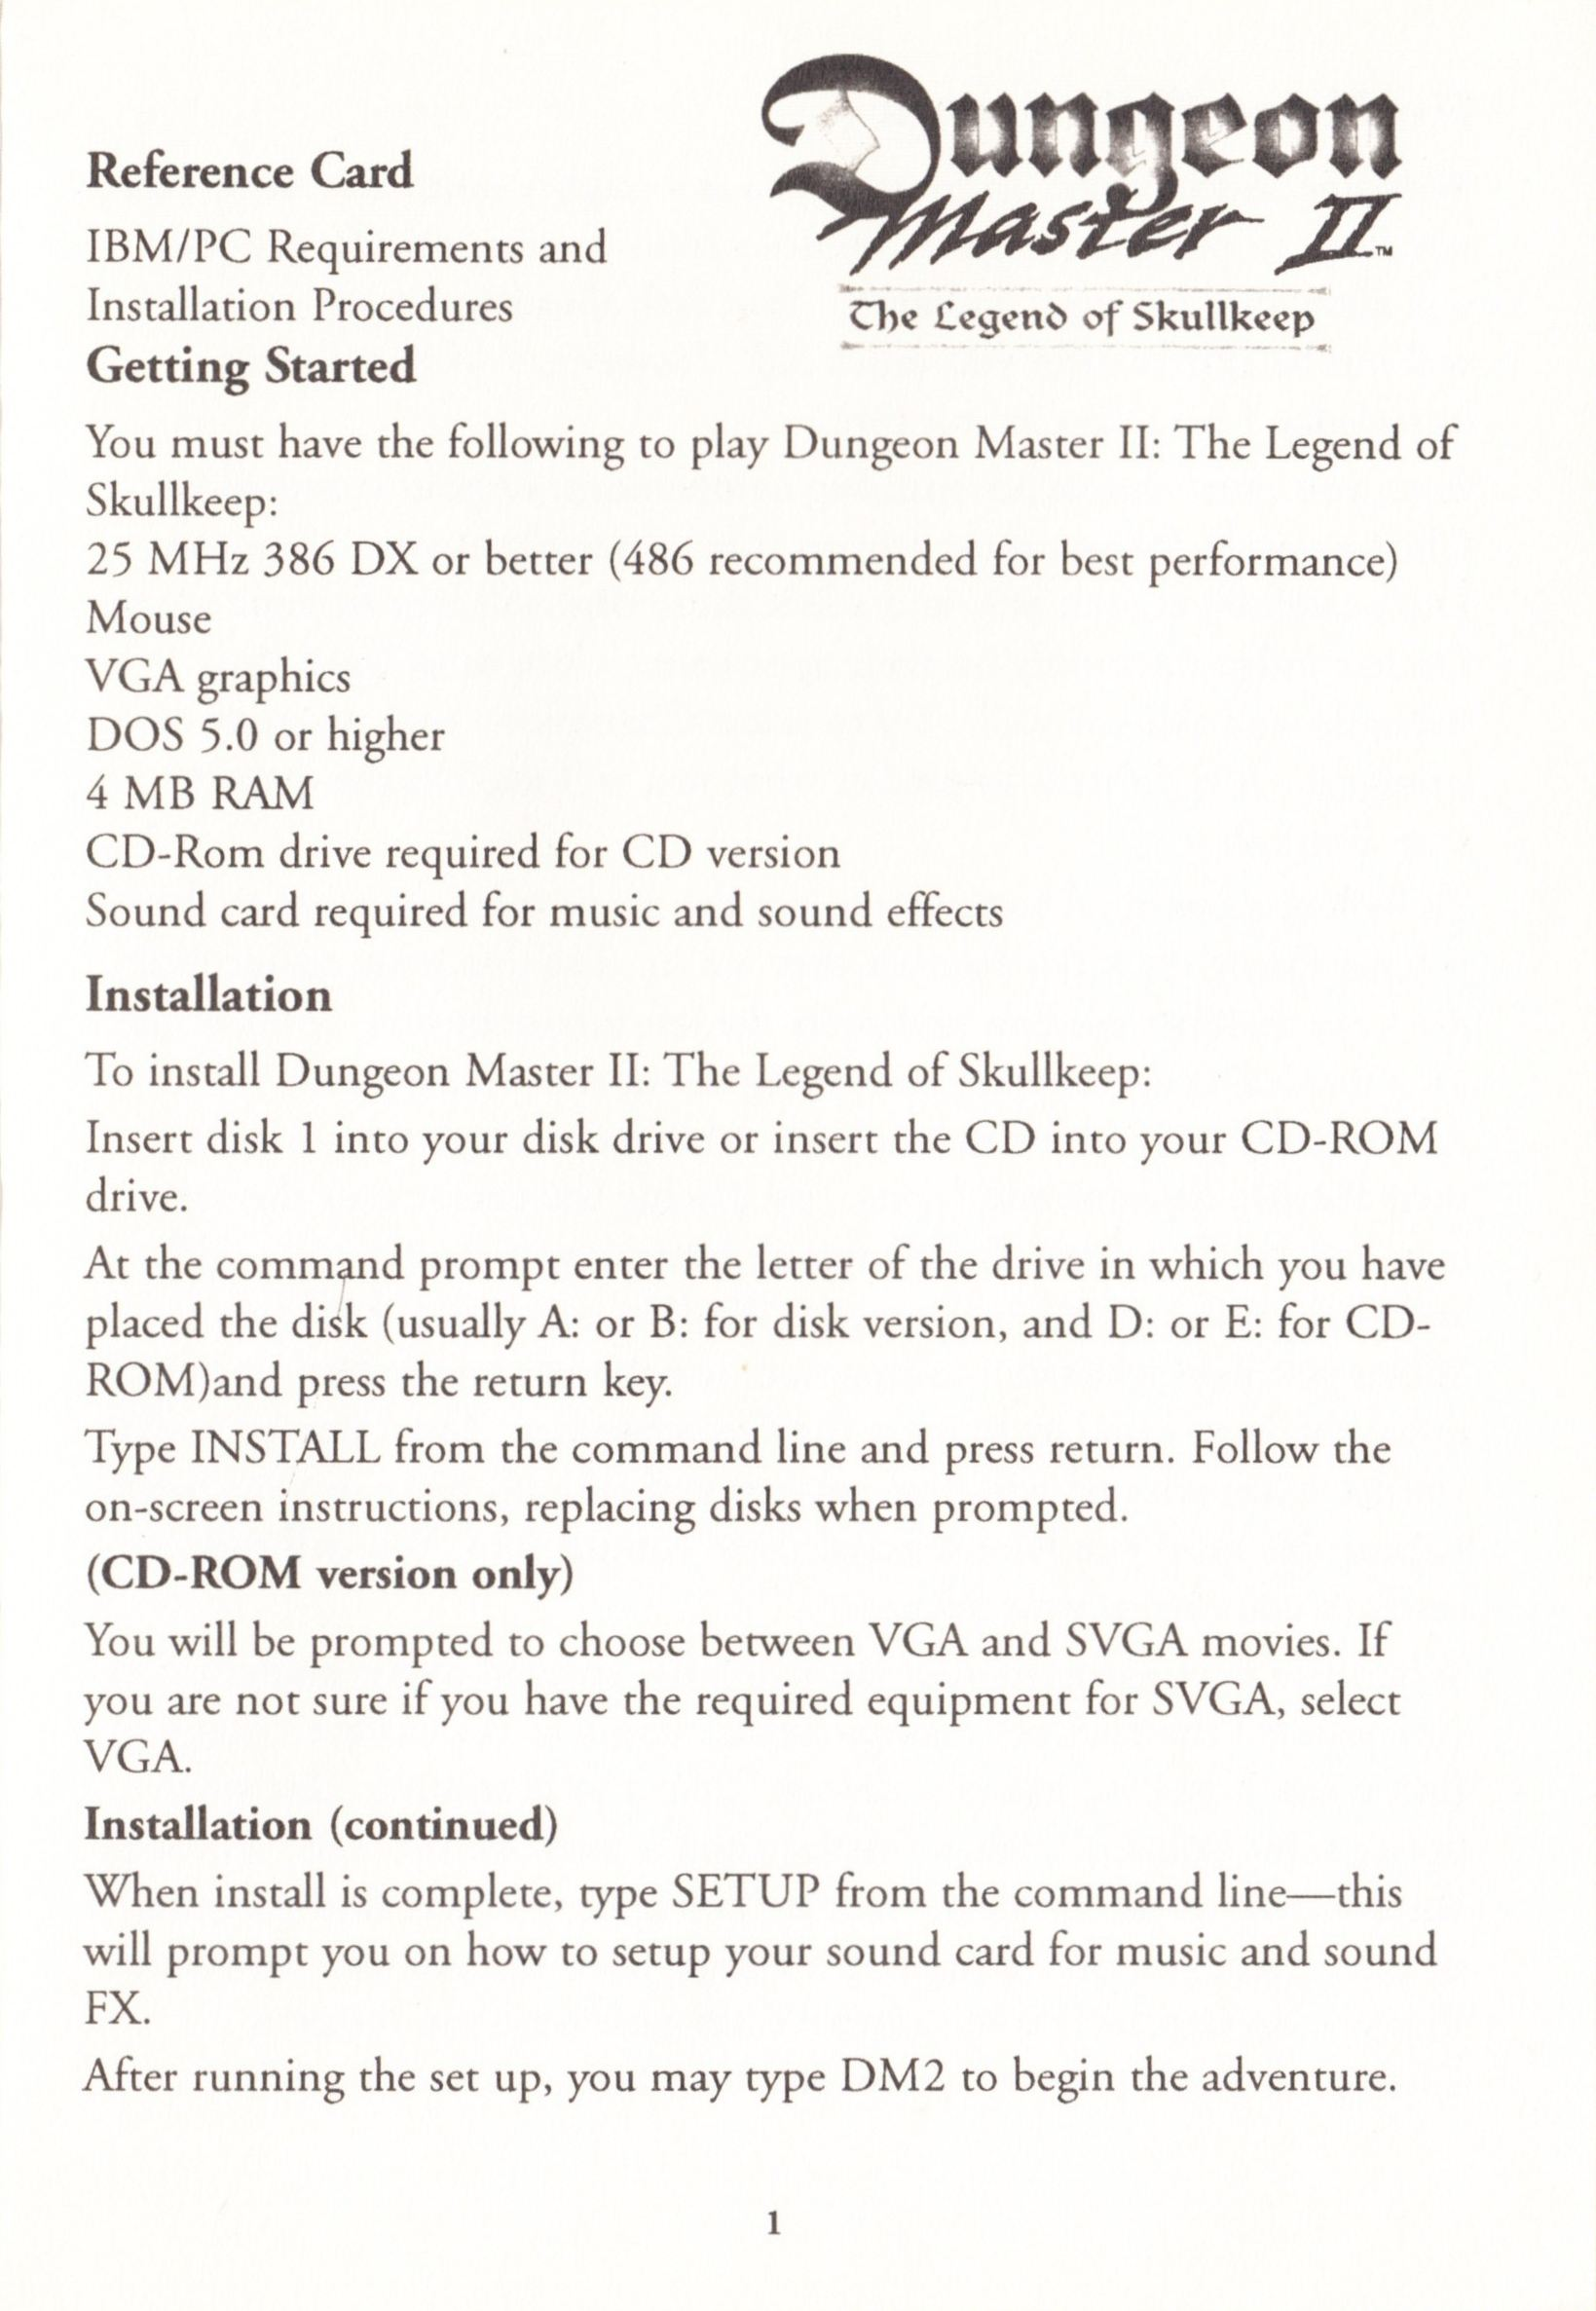 Game - Dungeon Master II - US - PC - Big Box - Reference Card - Page 001 - Scan